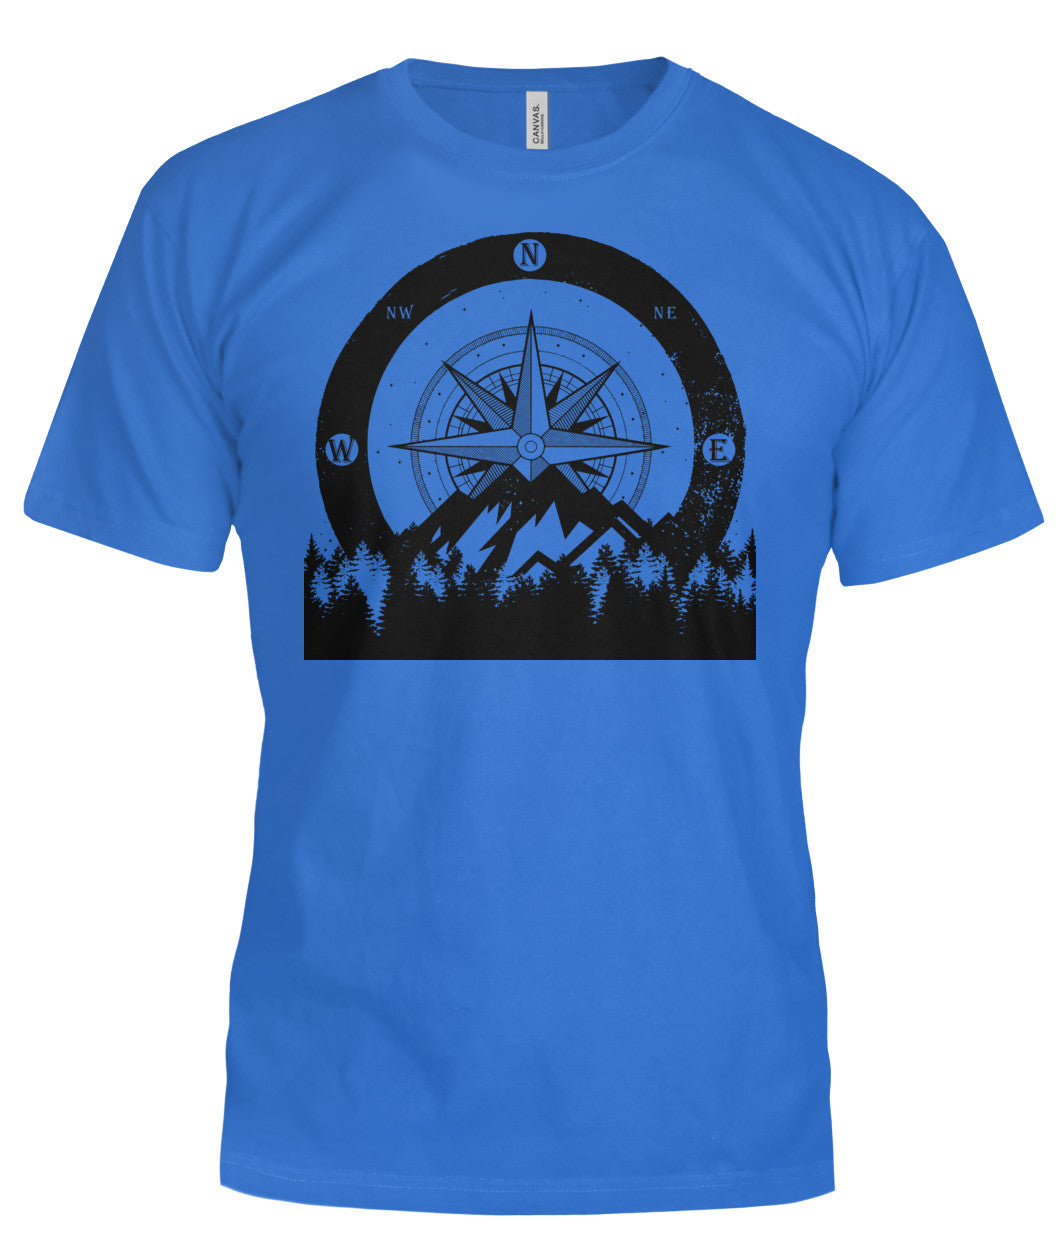 Adventure Awaits - Short Sleeve T-Shirt